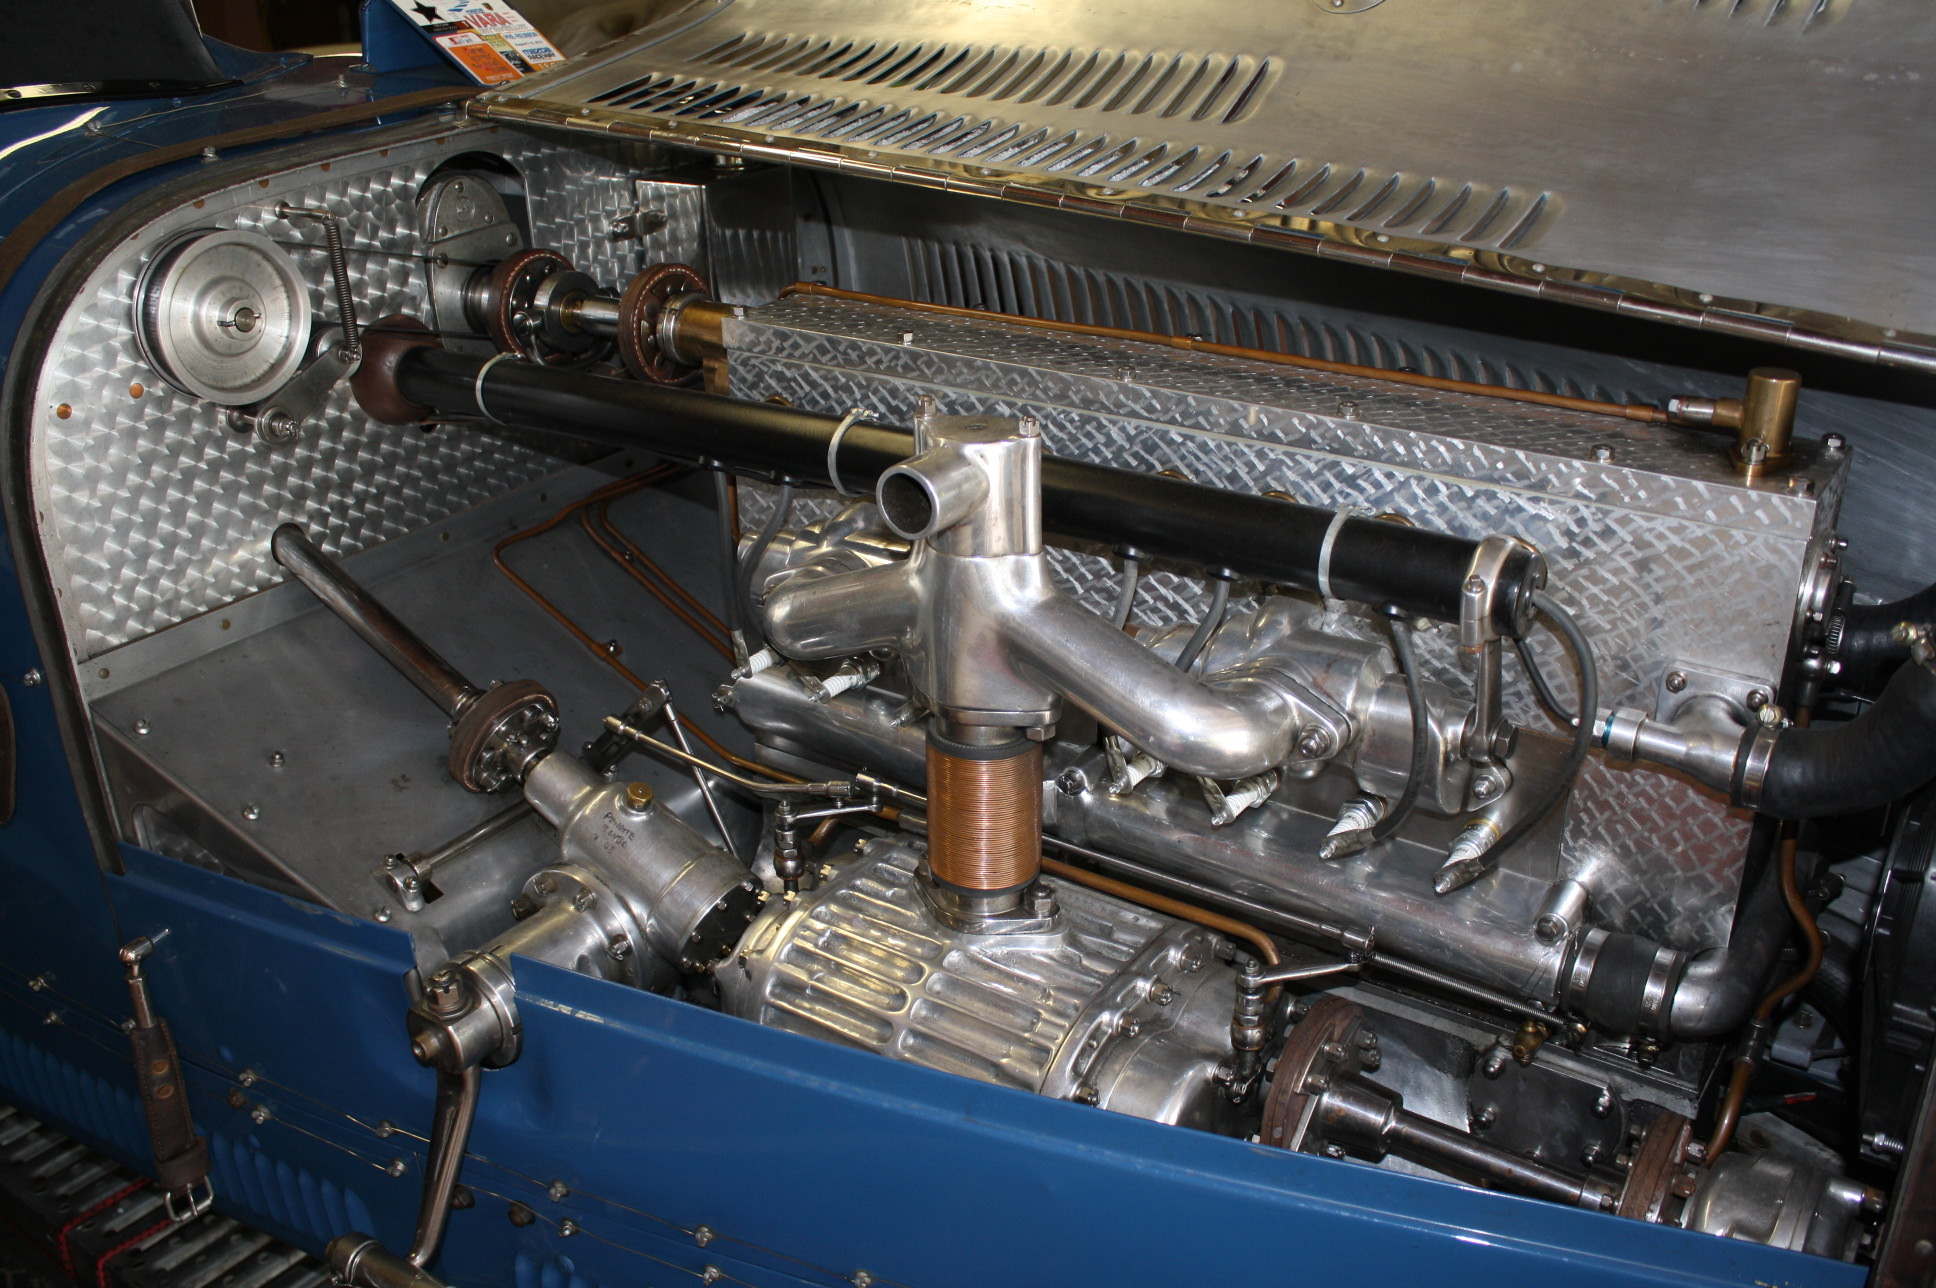 Vintage Sports And Racing Cars Pictures Archive Page 6 The W8 Engine Diagram Woodenboat Forum